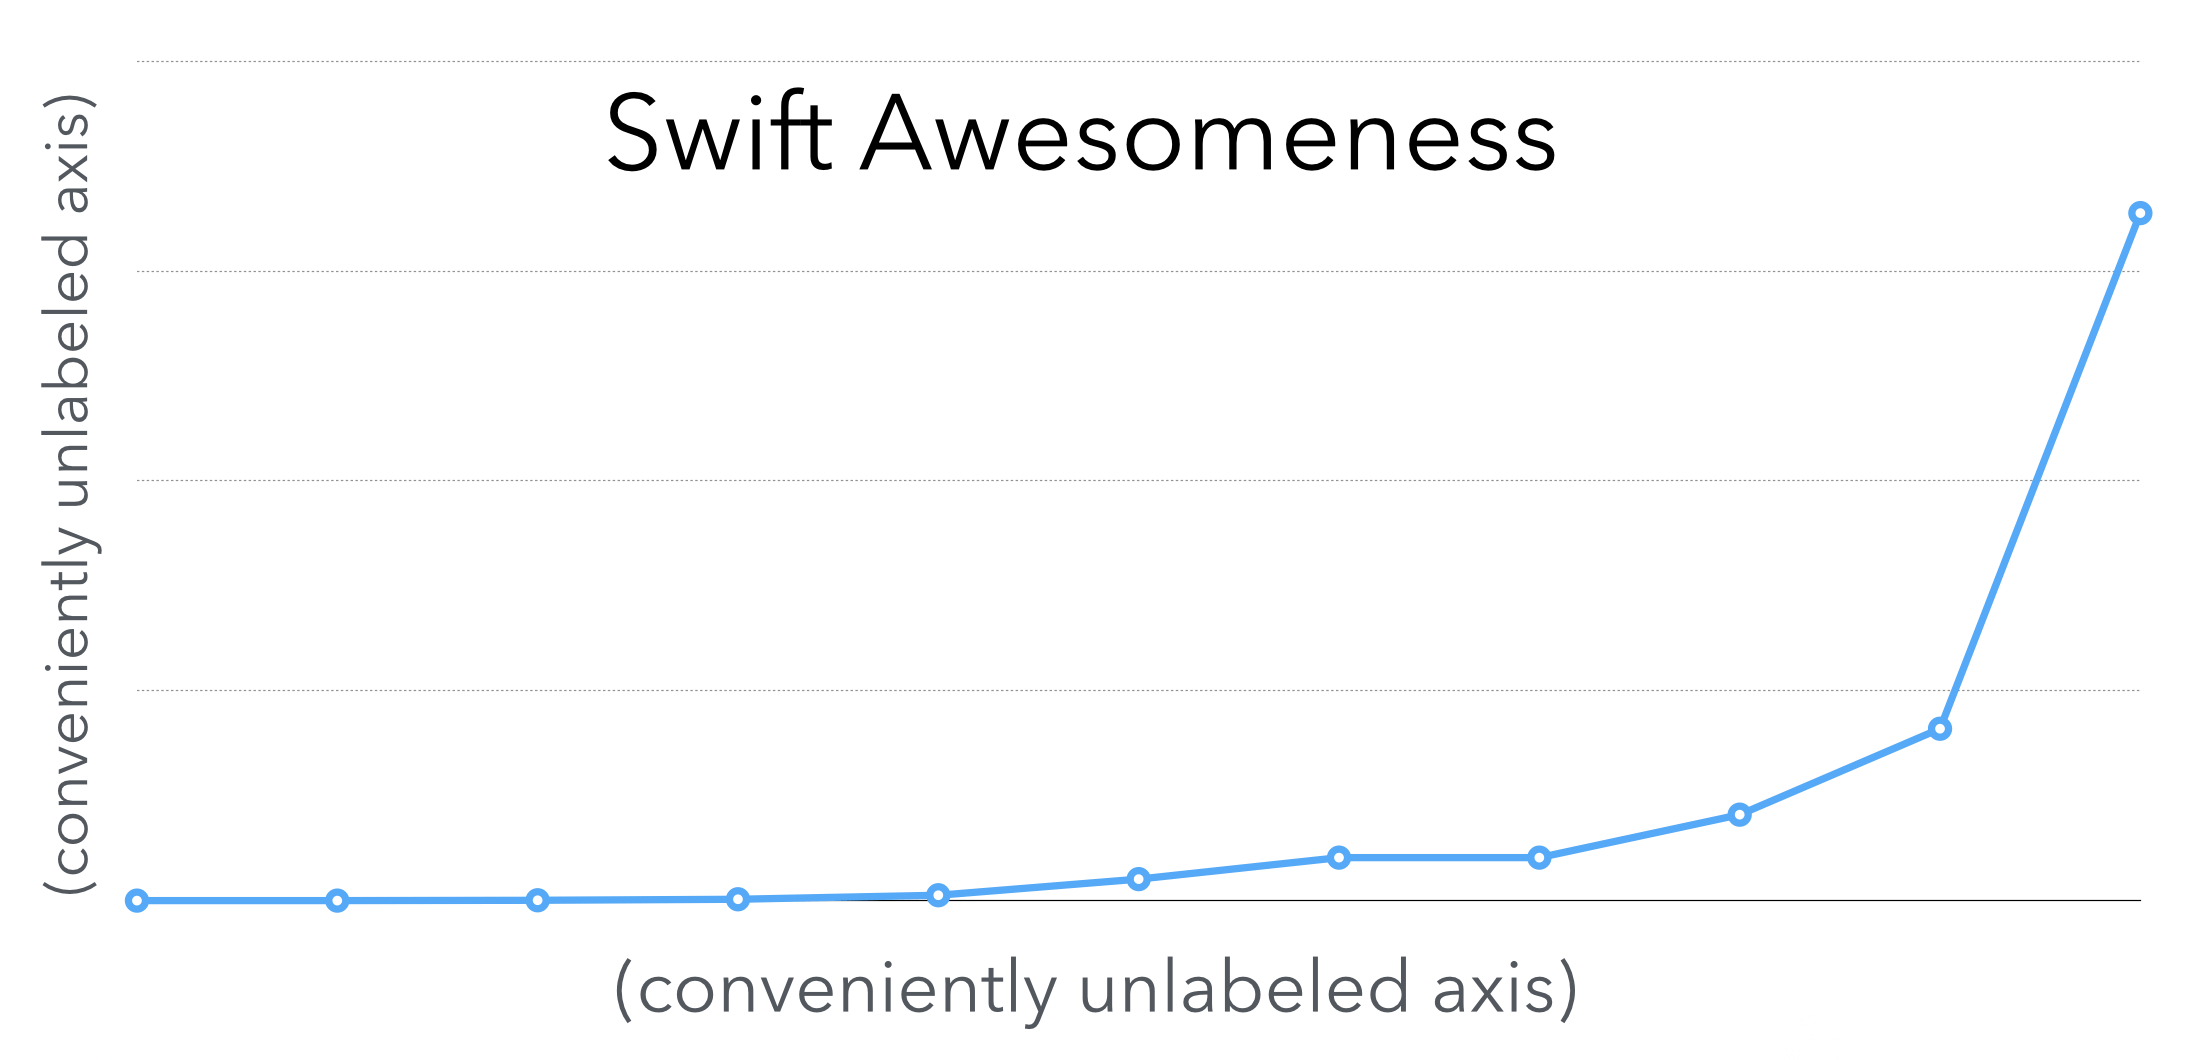 Swift awesomeness over time